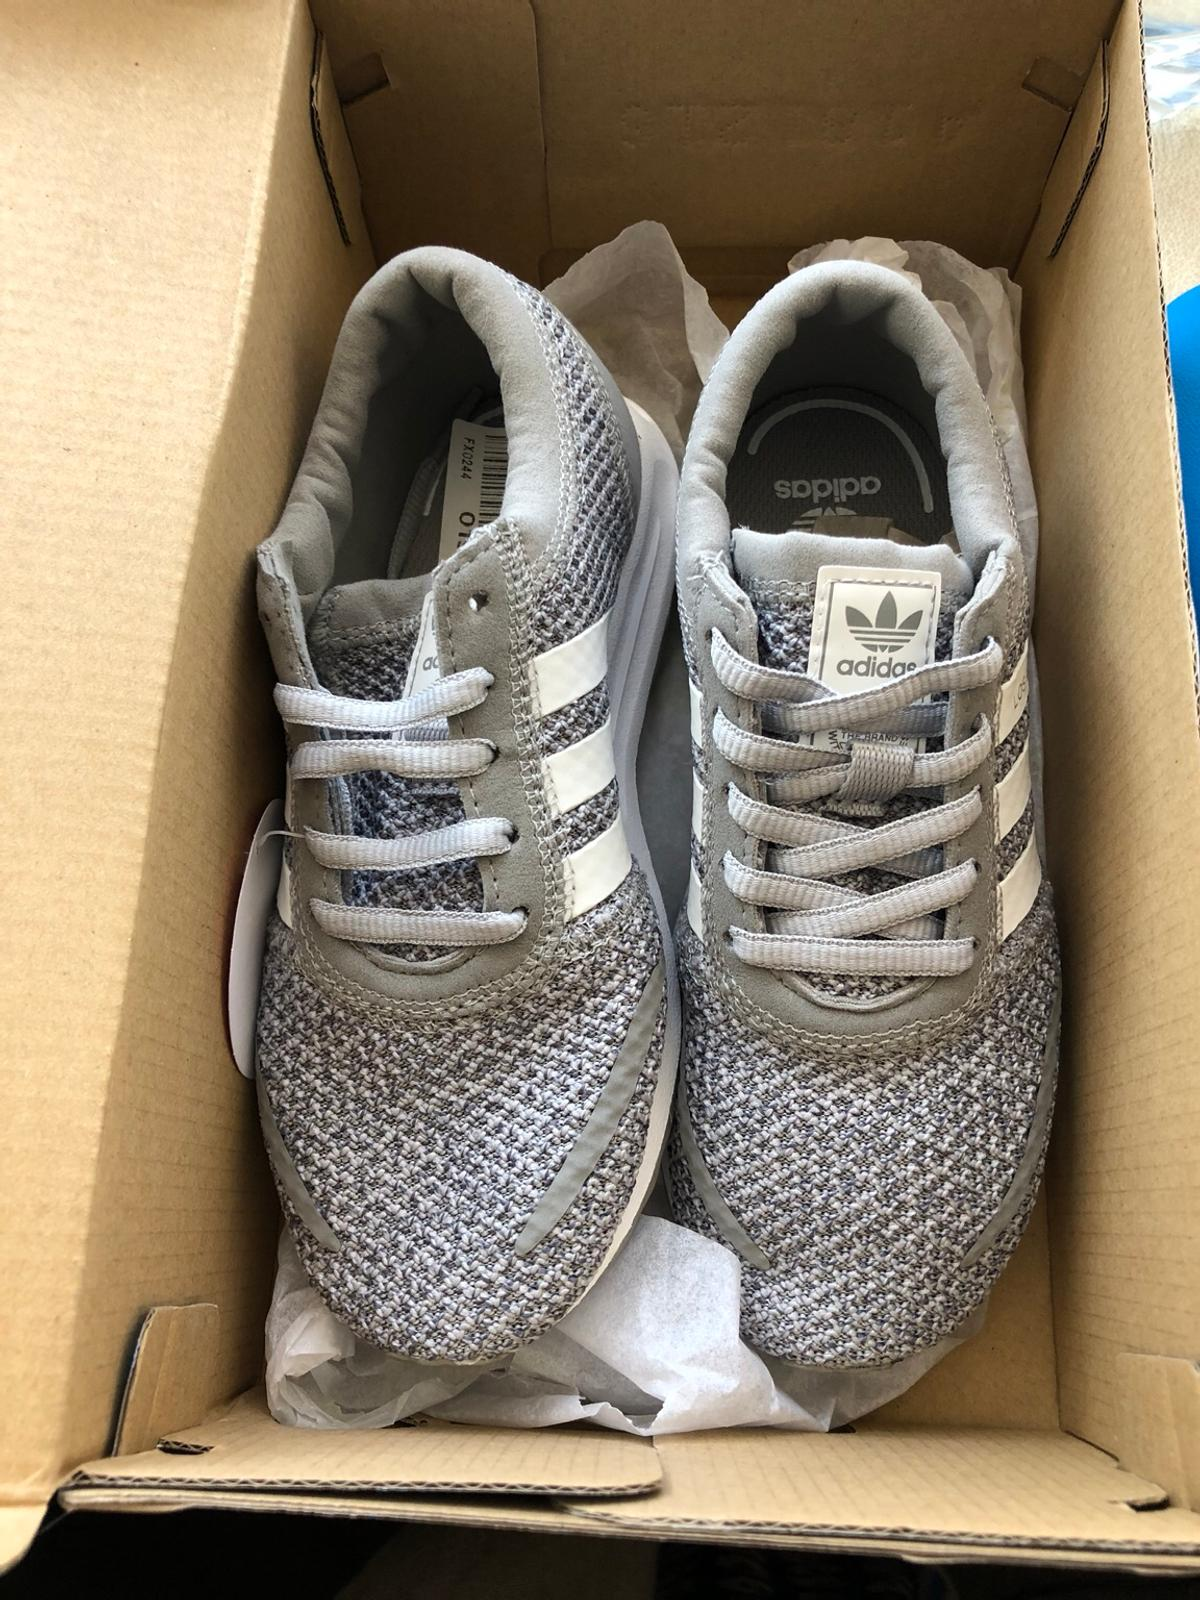 Adidas Los Angeles Kids Trainers AQ4427 in London Borough of